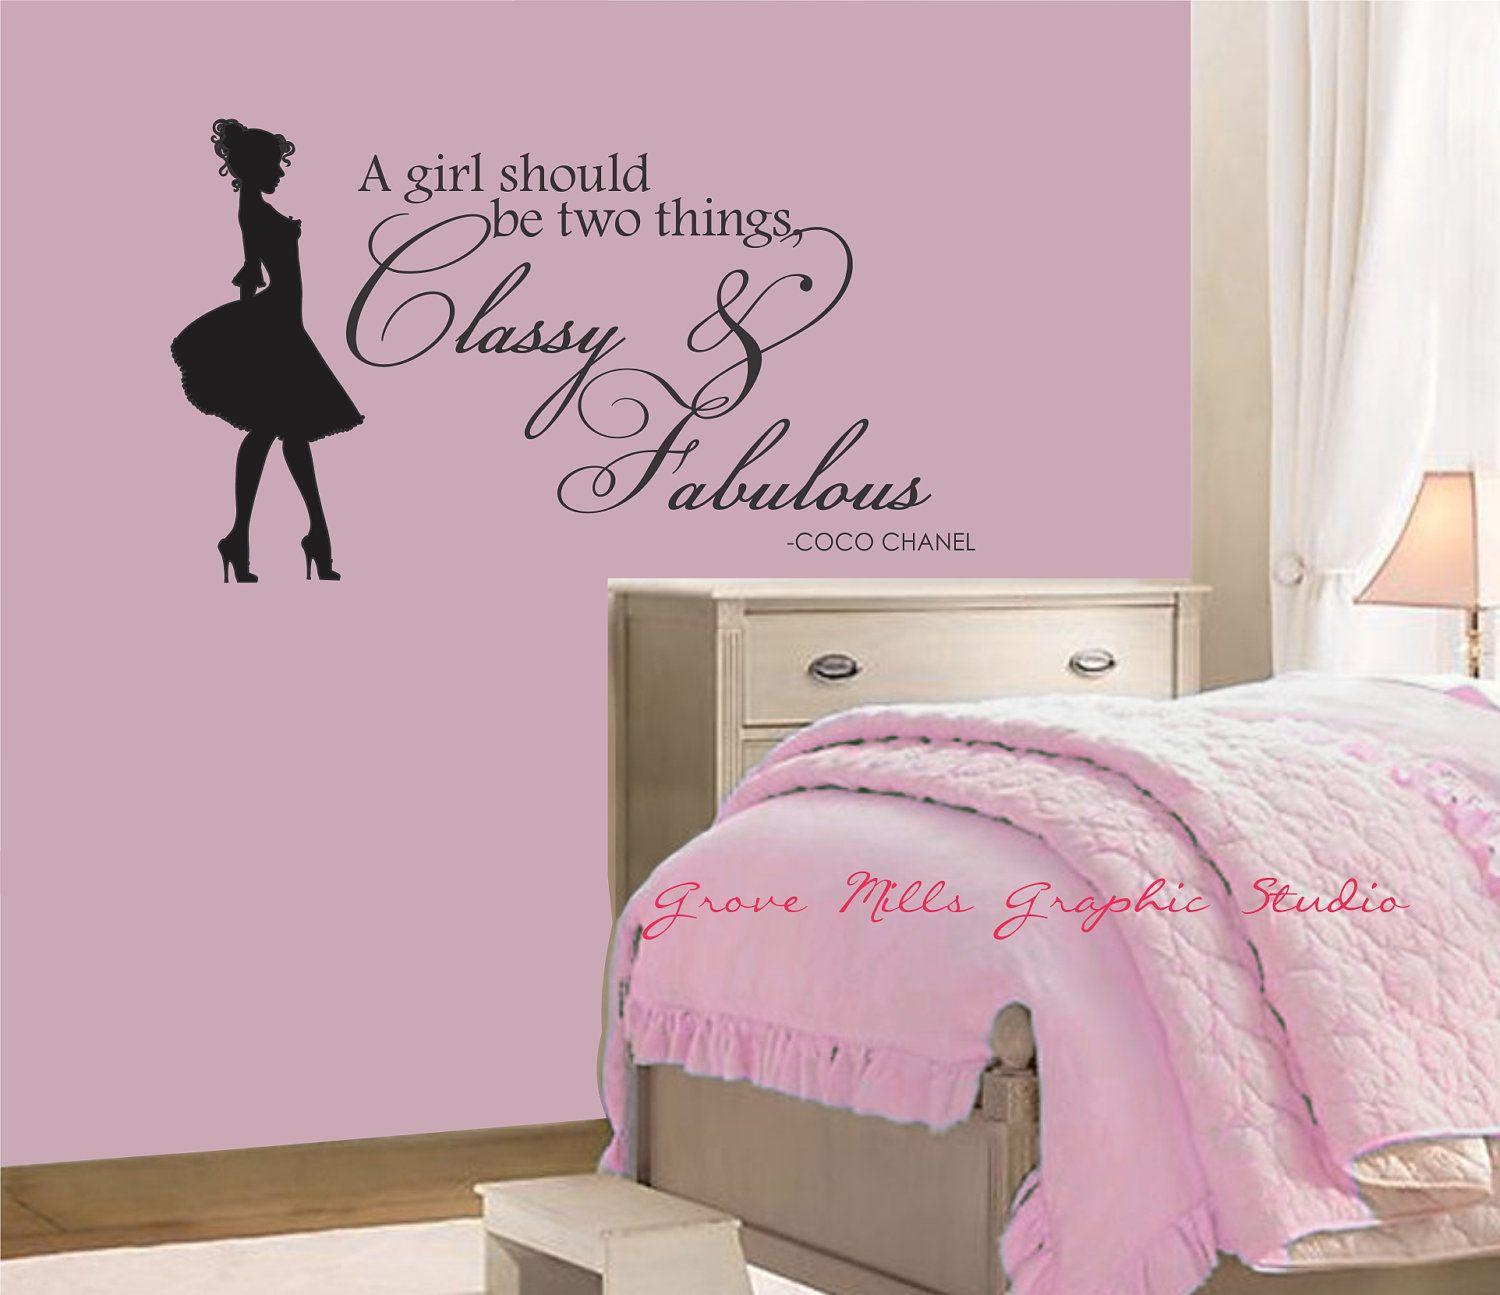 Classy and Fabulous Wall Decal   Coco Chanel Wall Quote   Girls Room Wall  Decal   Girls room wall art   girl wall decor. Classy and Fabulous Wall Decal   Coco Chanel Wall Quote   Girls